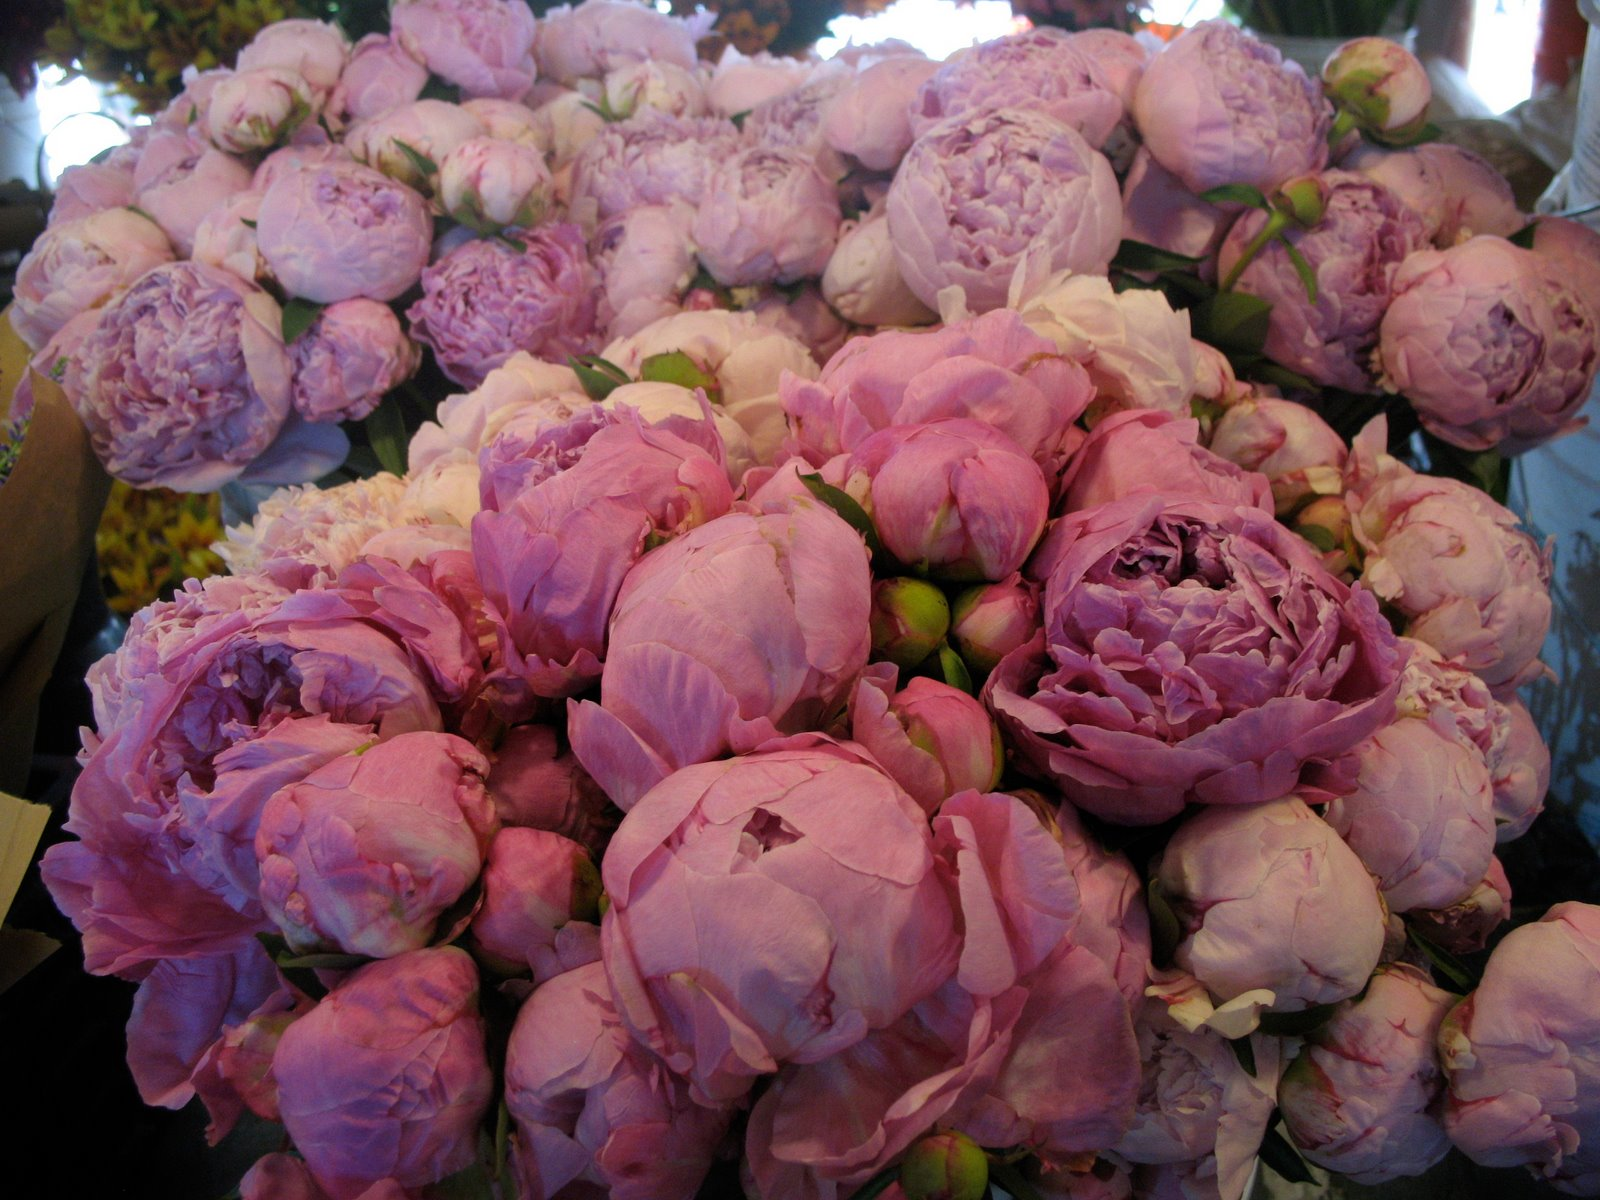 Late Fall Wallpaper Windmill Farm Roses Peonies And Snow Ball Plants Are